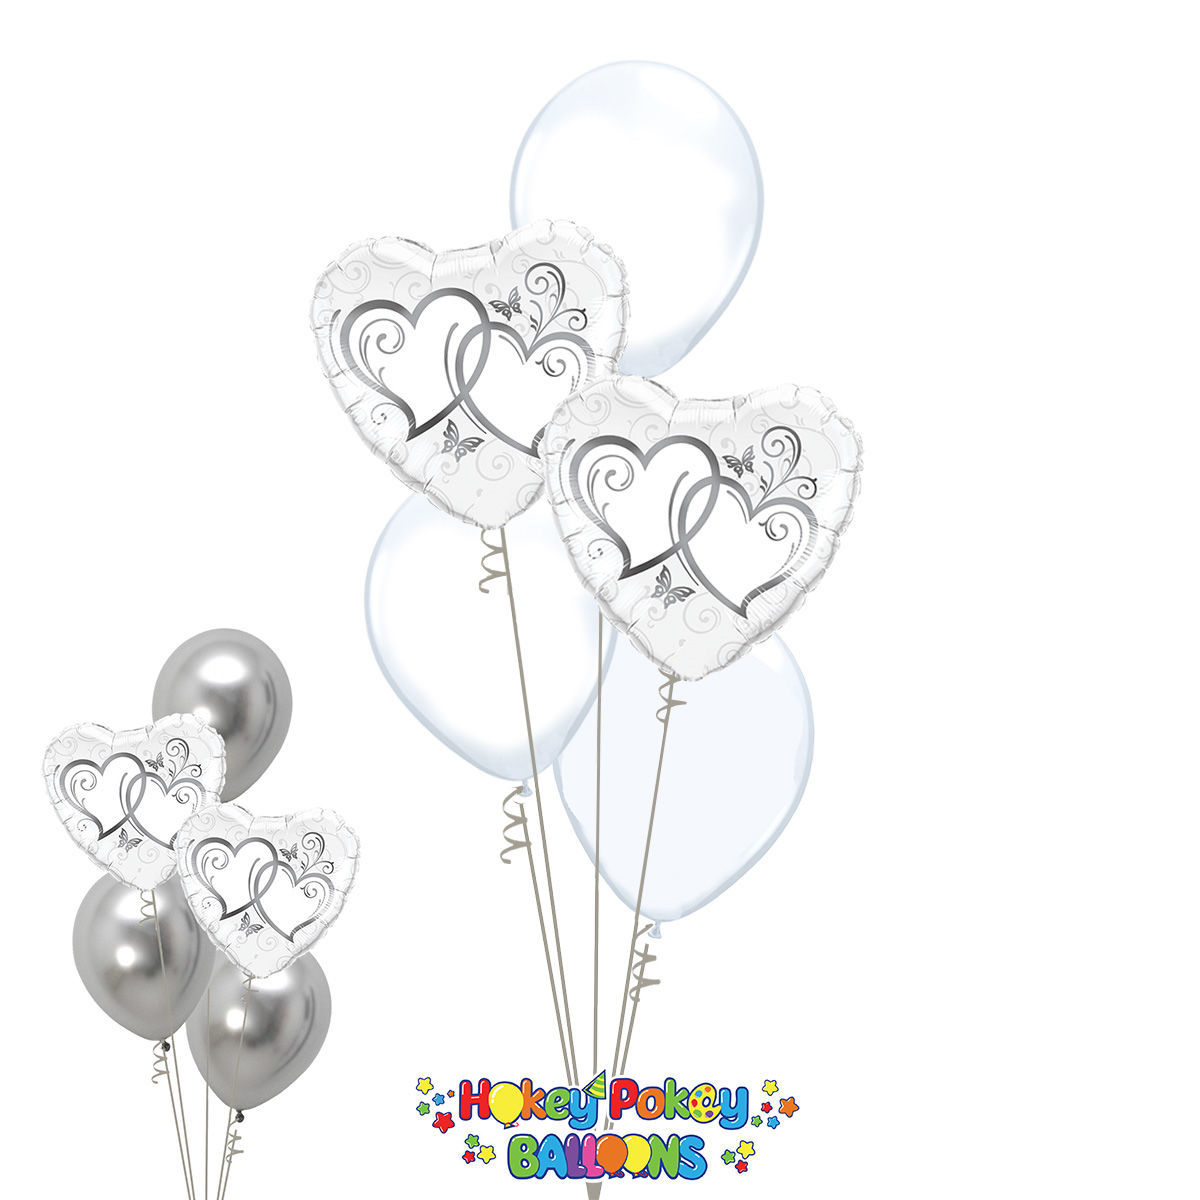 Picture of Entwined Silver Hearts - Balloon Bouquet of 5